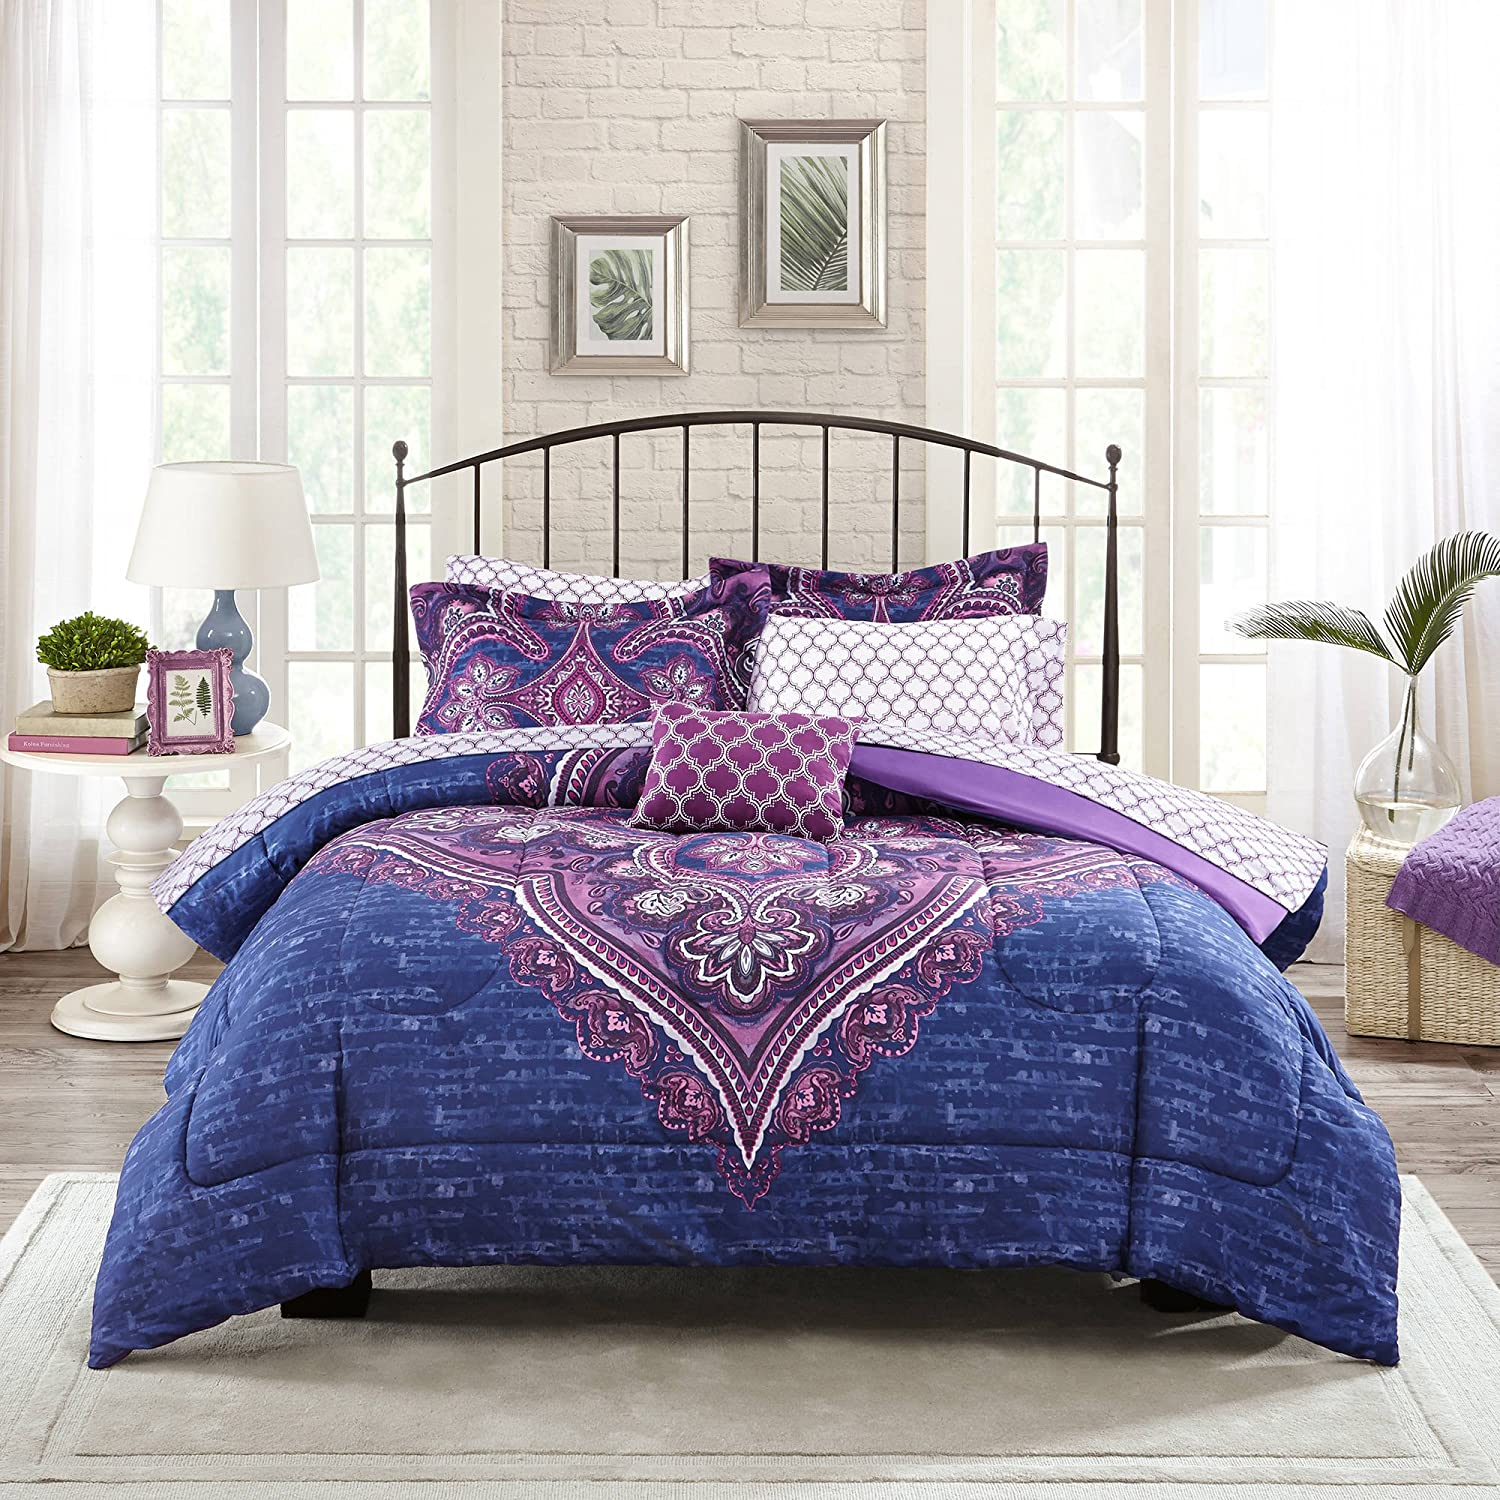 Amazon com mainstays teens grace purple floral reversible medallion bedding full comforter sets for girls 7 piece in a bag home kitchen